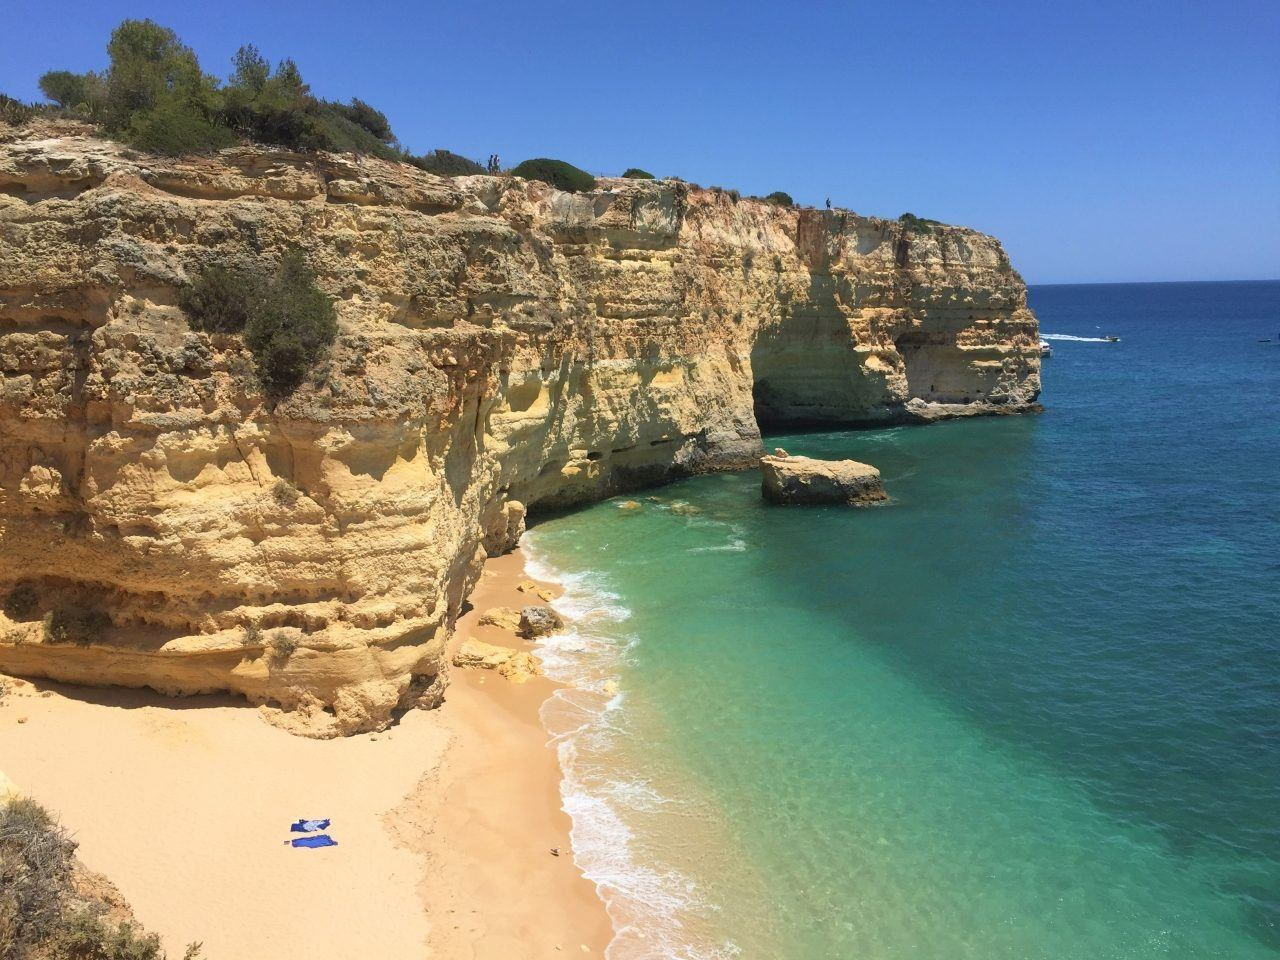 Algarve rock wall and beach